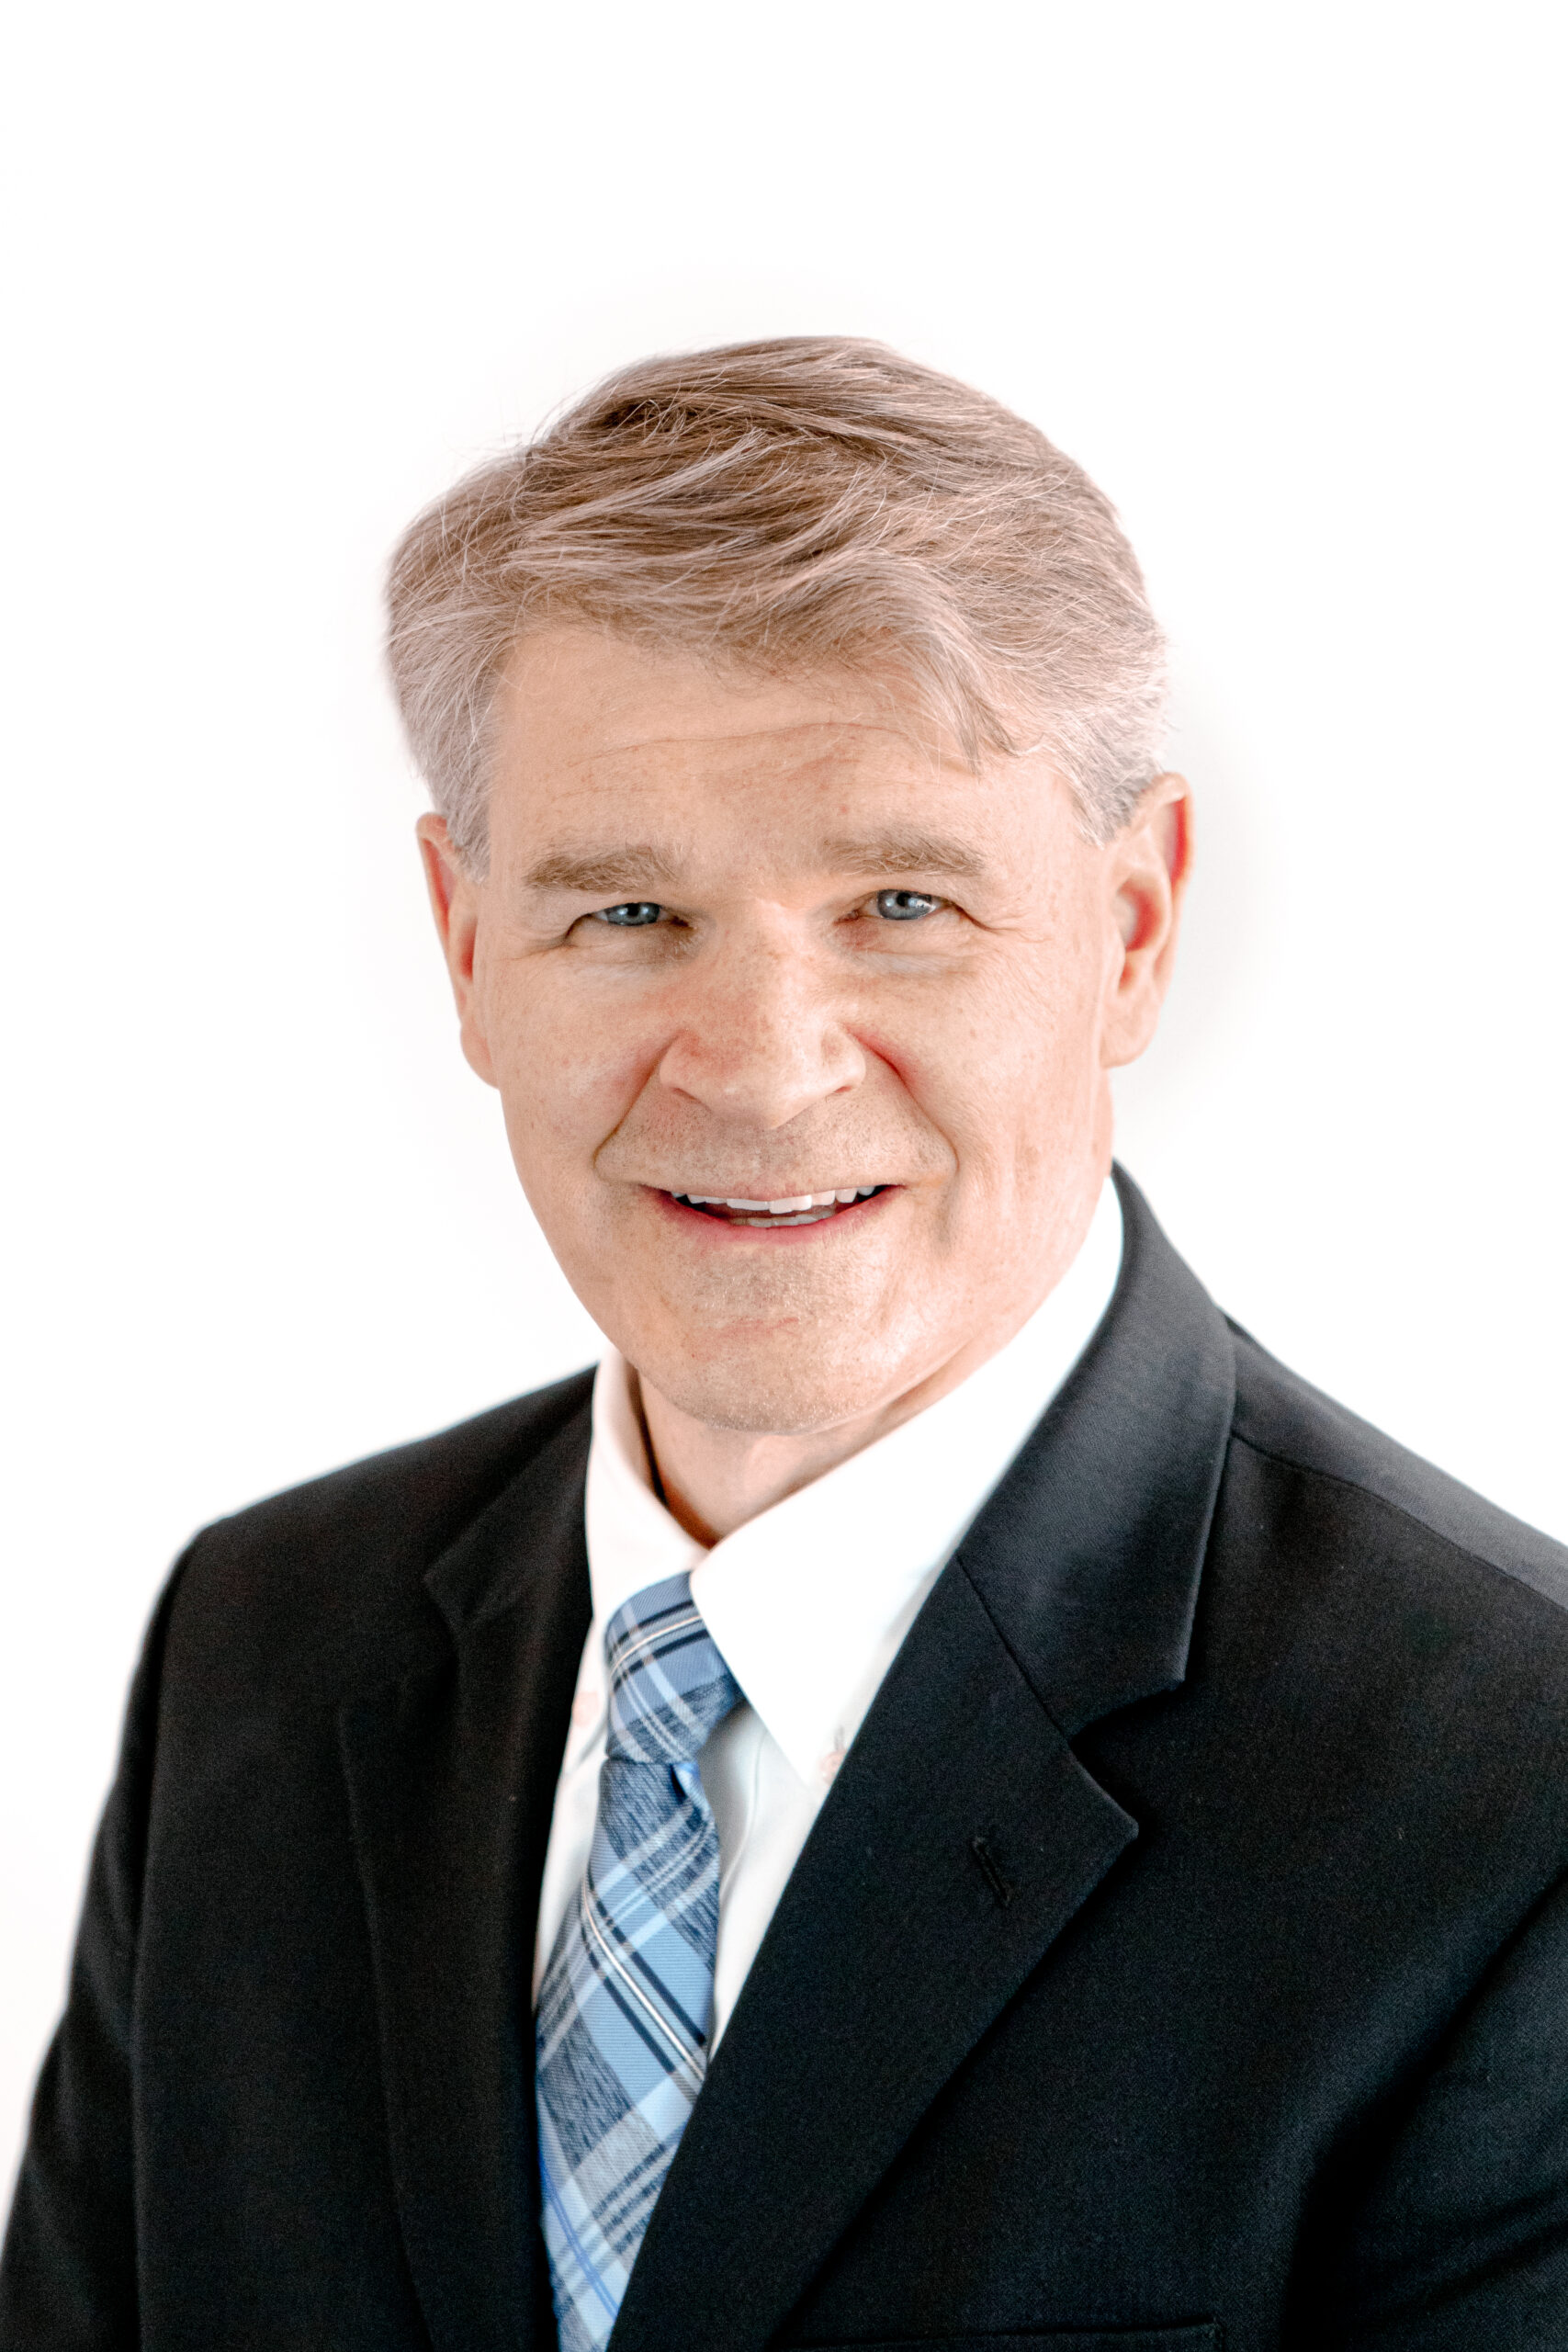 Brian McConnell